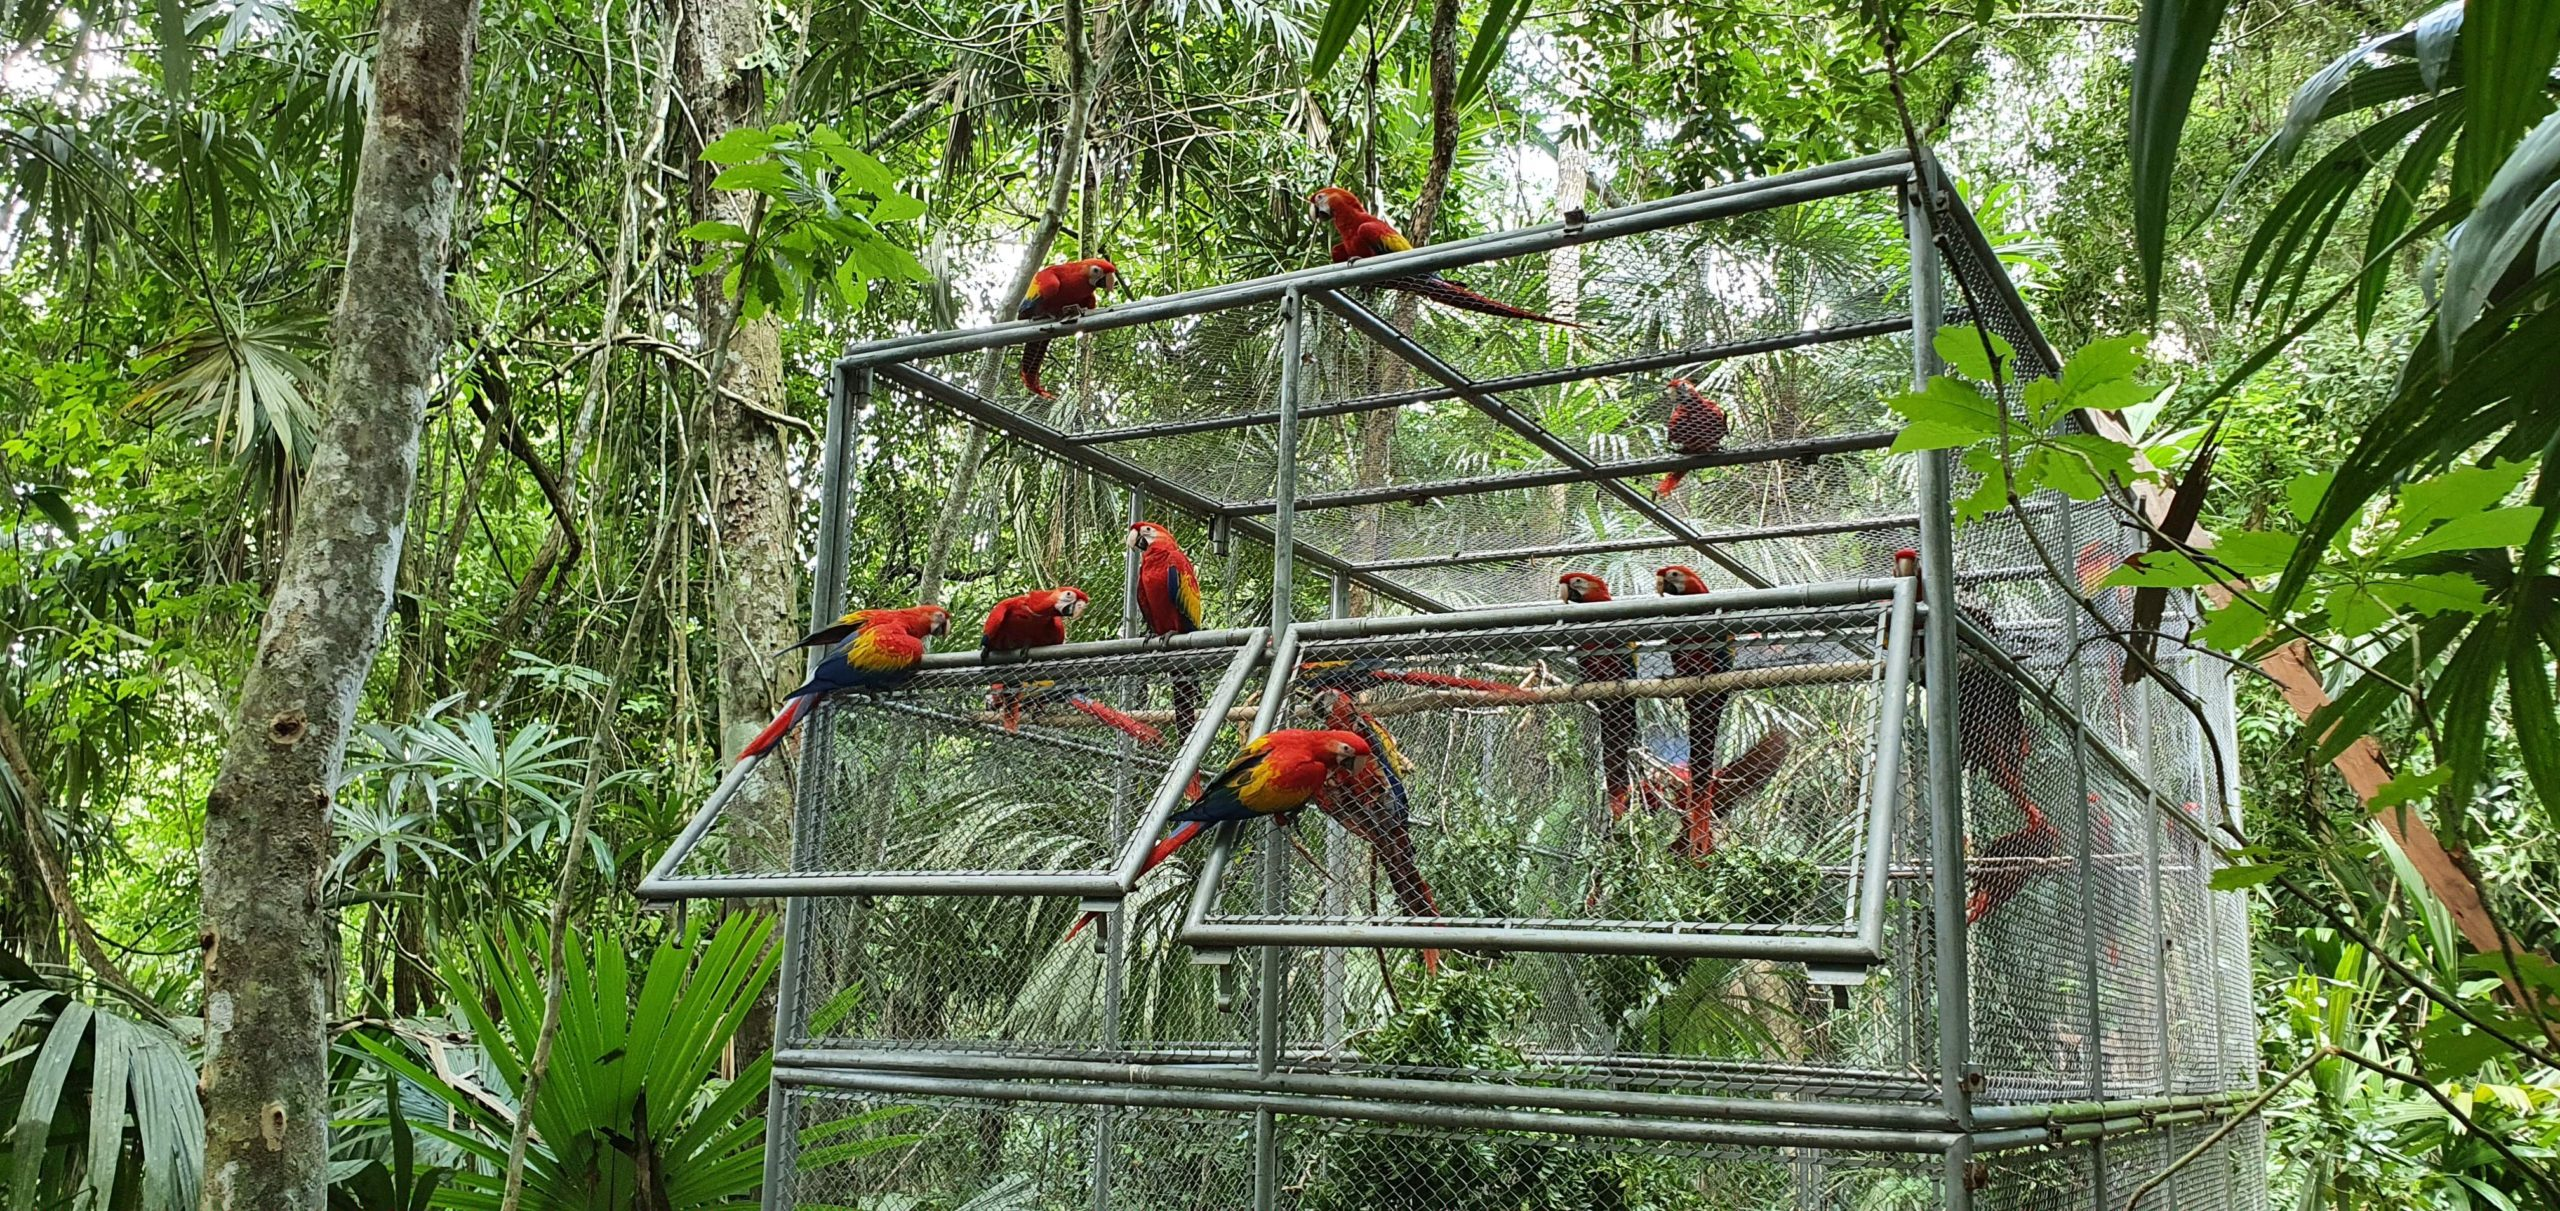 The 26 scarlet macaws reared by the WCS Guatemala Program are released but can come. Photo courtesy of WCS.